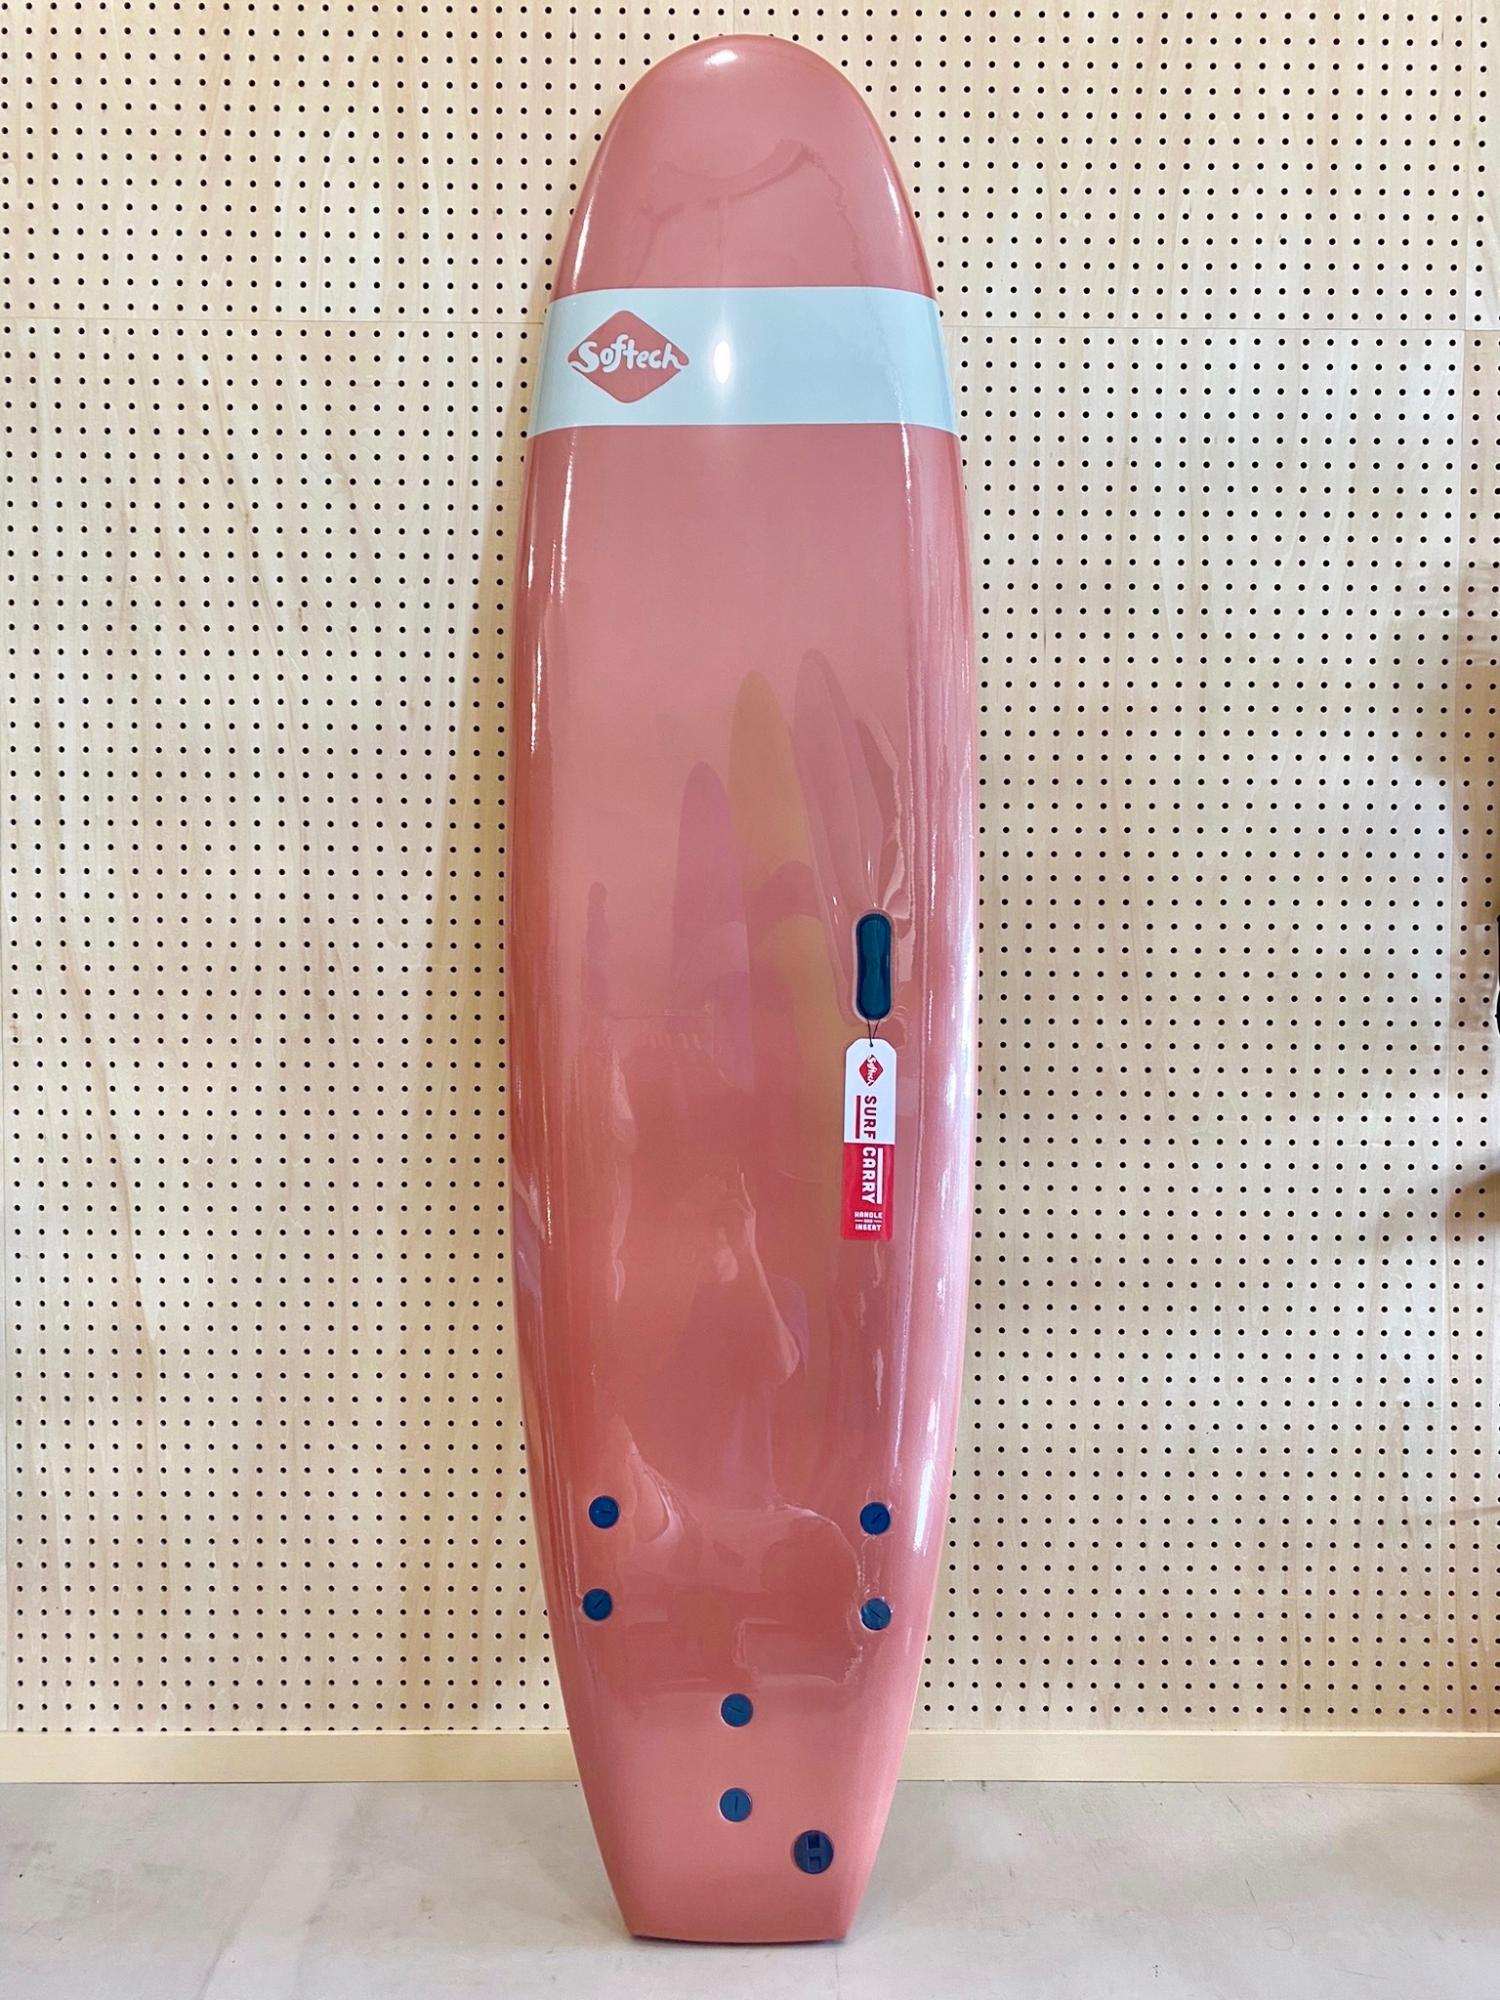 USED BOARDS (SOFTECH SABRE 6.6)